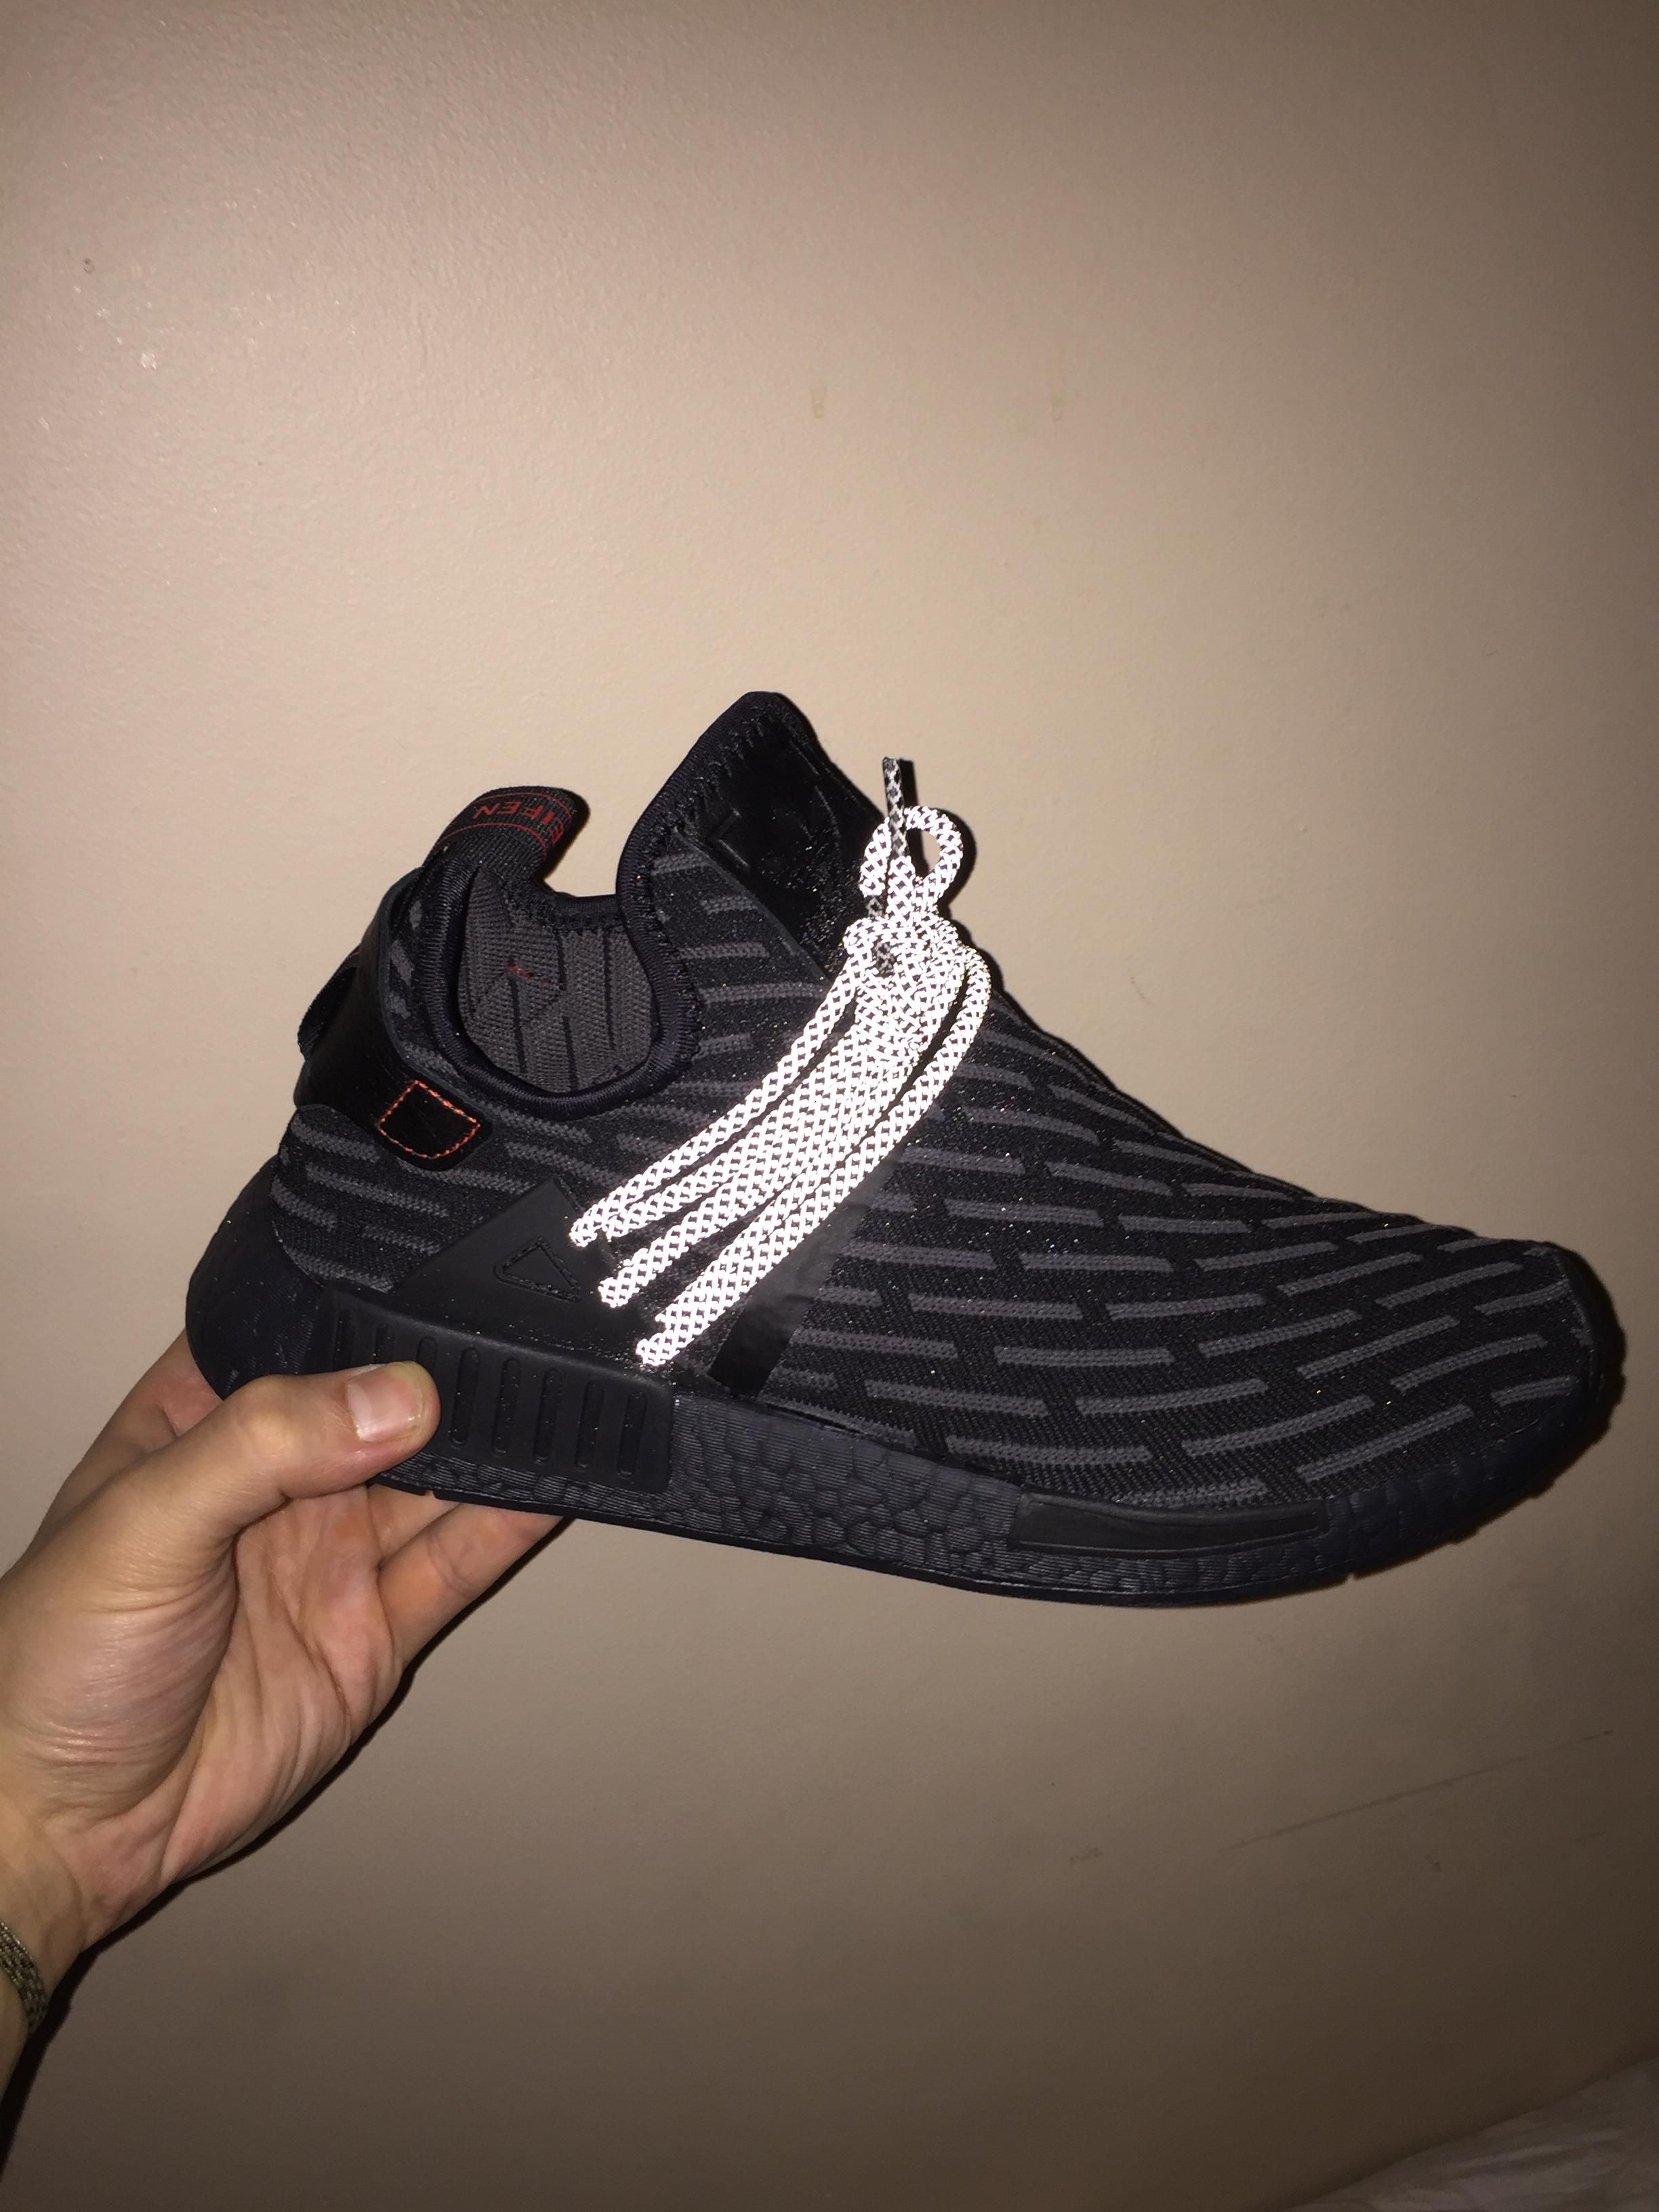 3e4aca38d109a Adidas NMD XR1 PK Triple Black custom